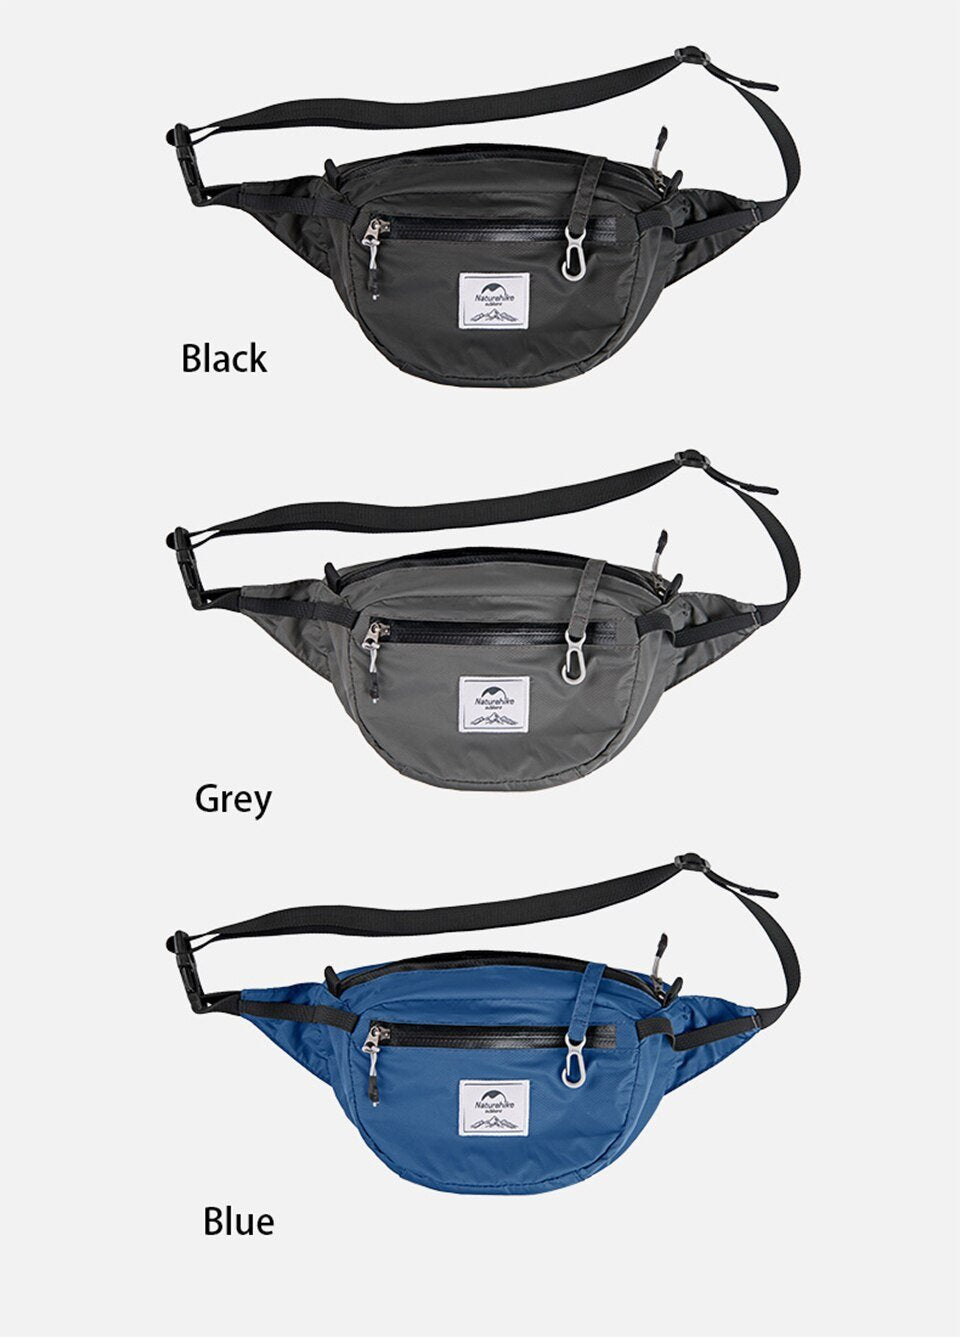 All colors Naturehike Packable Fanny Pack - Foldable Bag